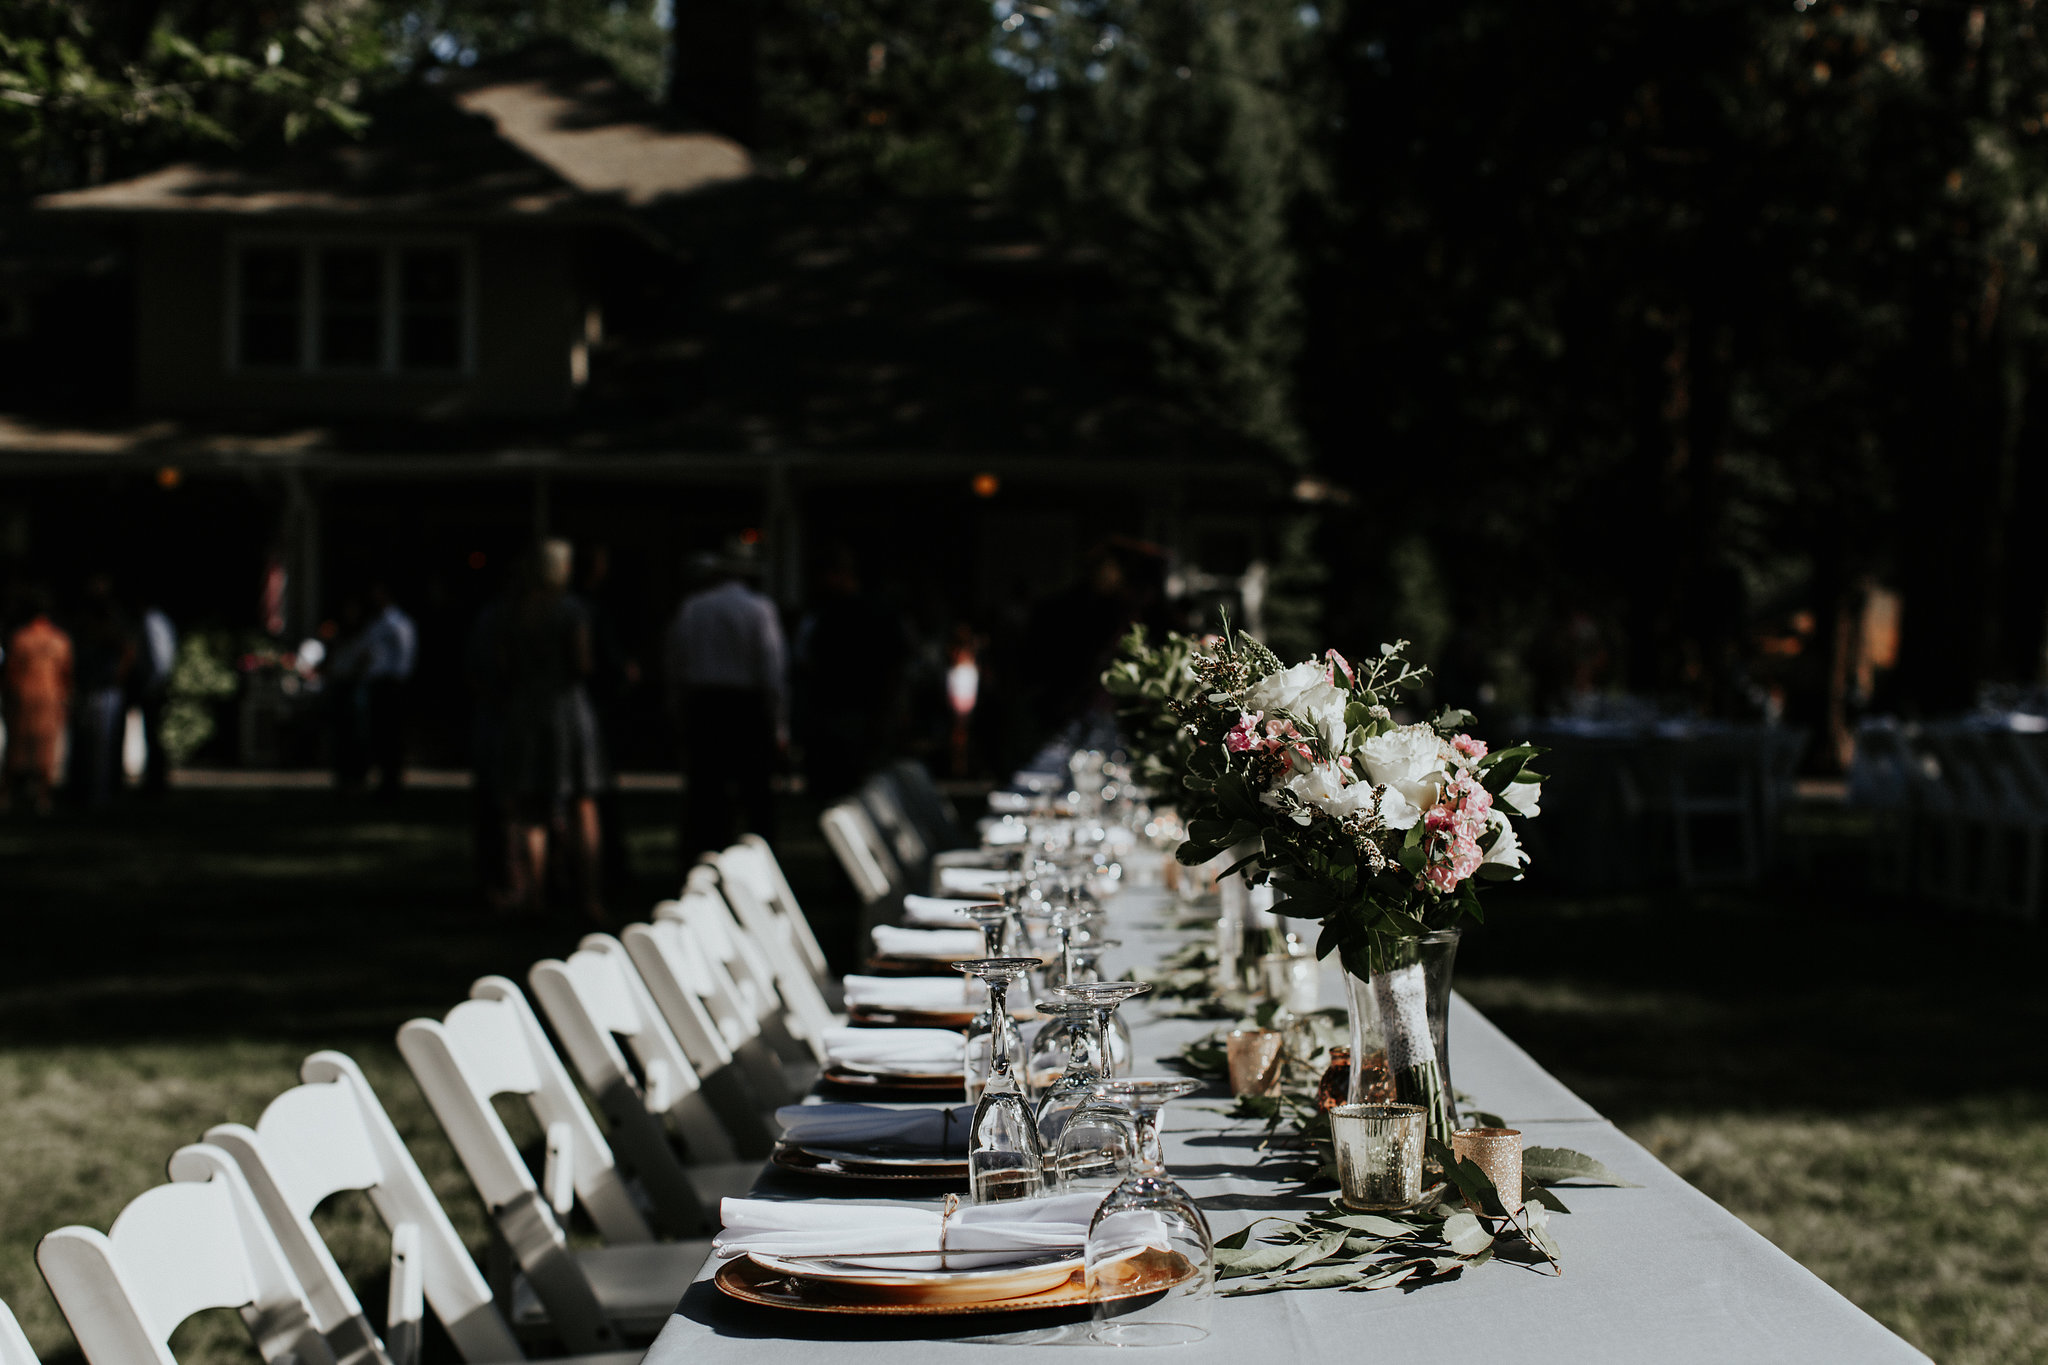 hannah-merritt-photography-porter-wedding-mccloud-guest-house-mt-shasta-california-647.jpg